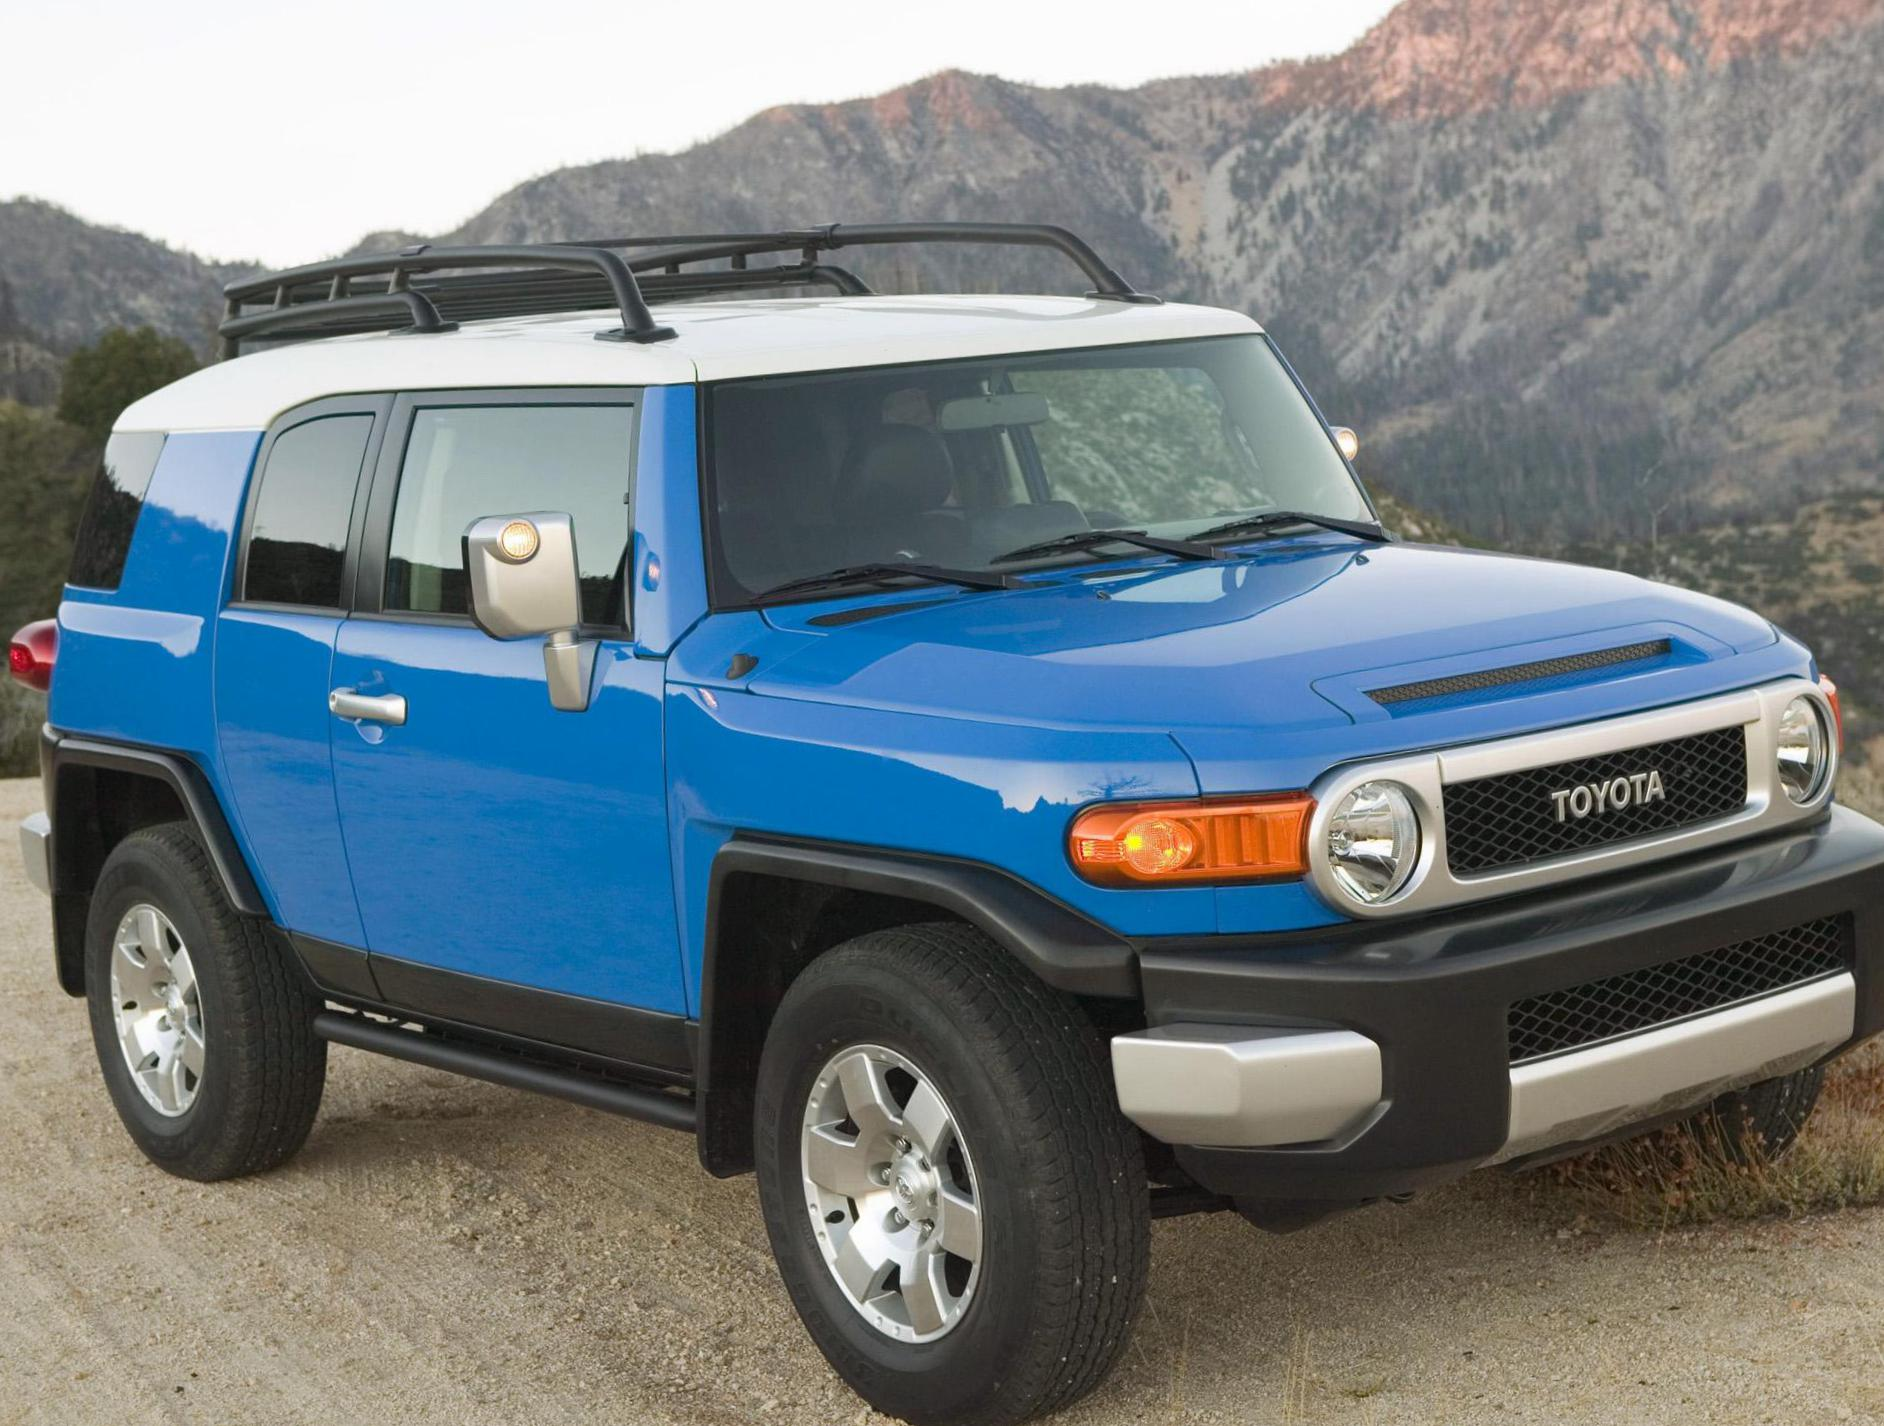 Toyota FJ Cruiser spec hatchback